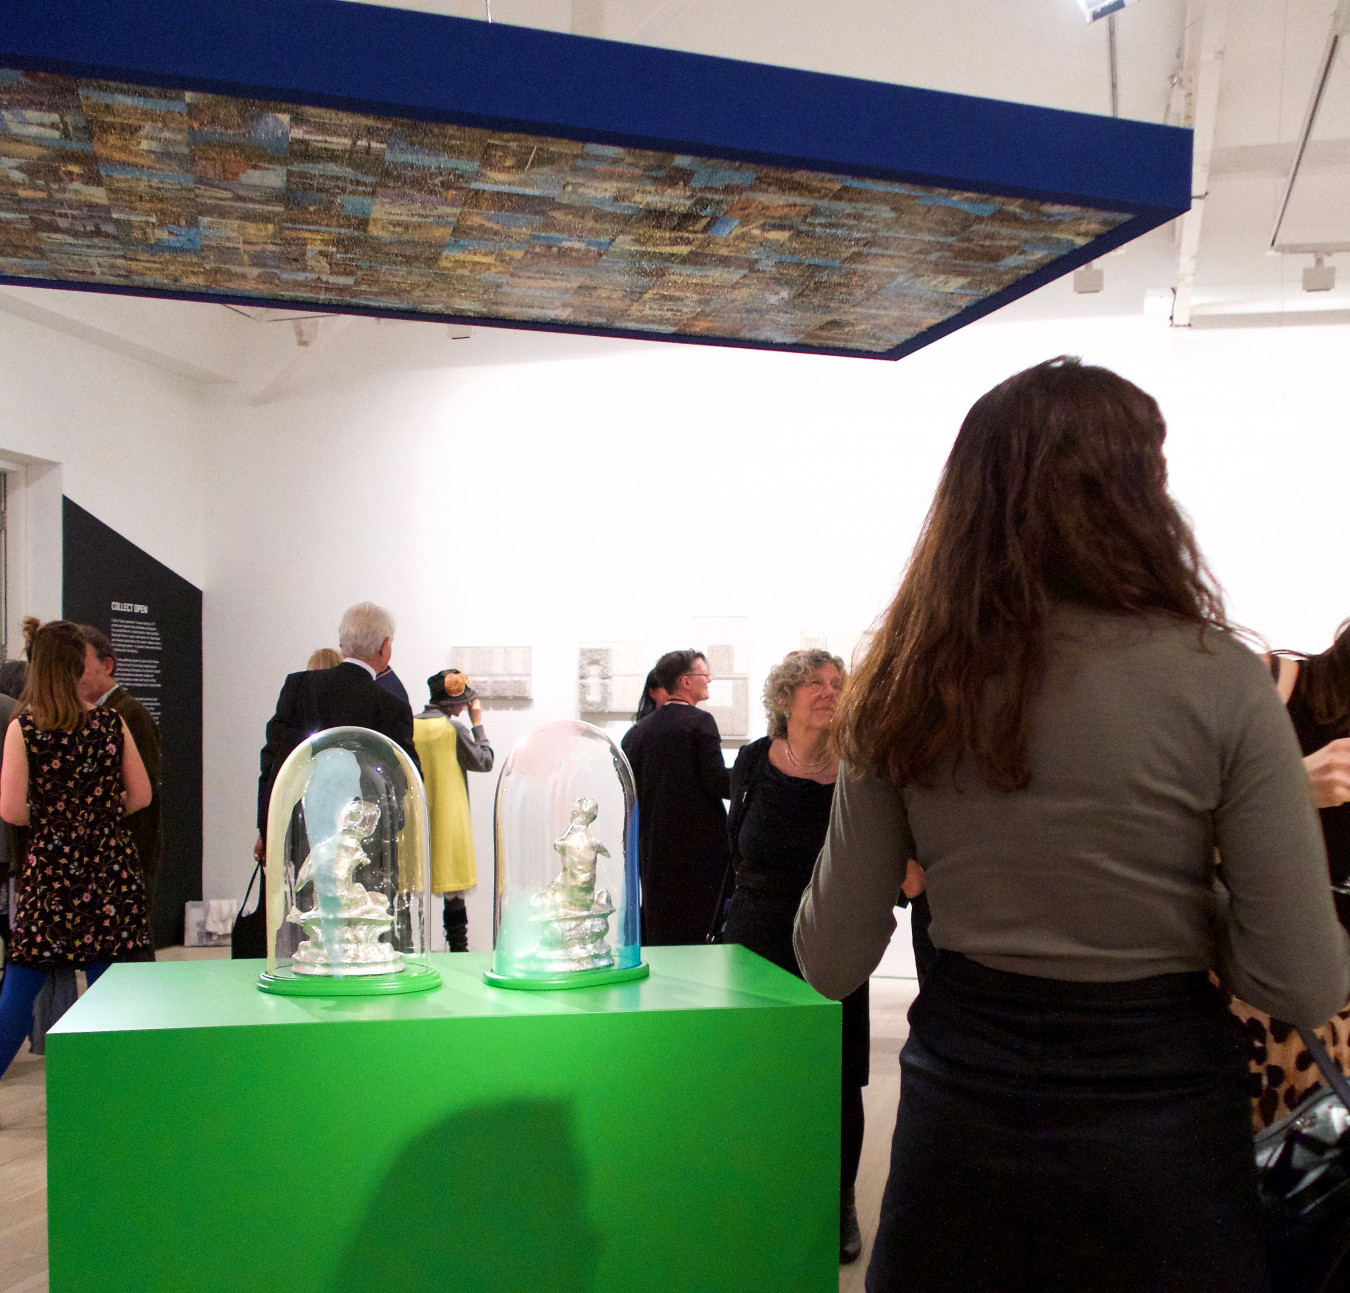 'ROOM' installed at Saatchi Gallery, London with vistors viewing the work in the gallery space.